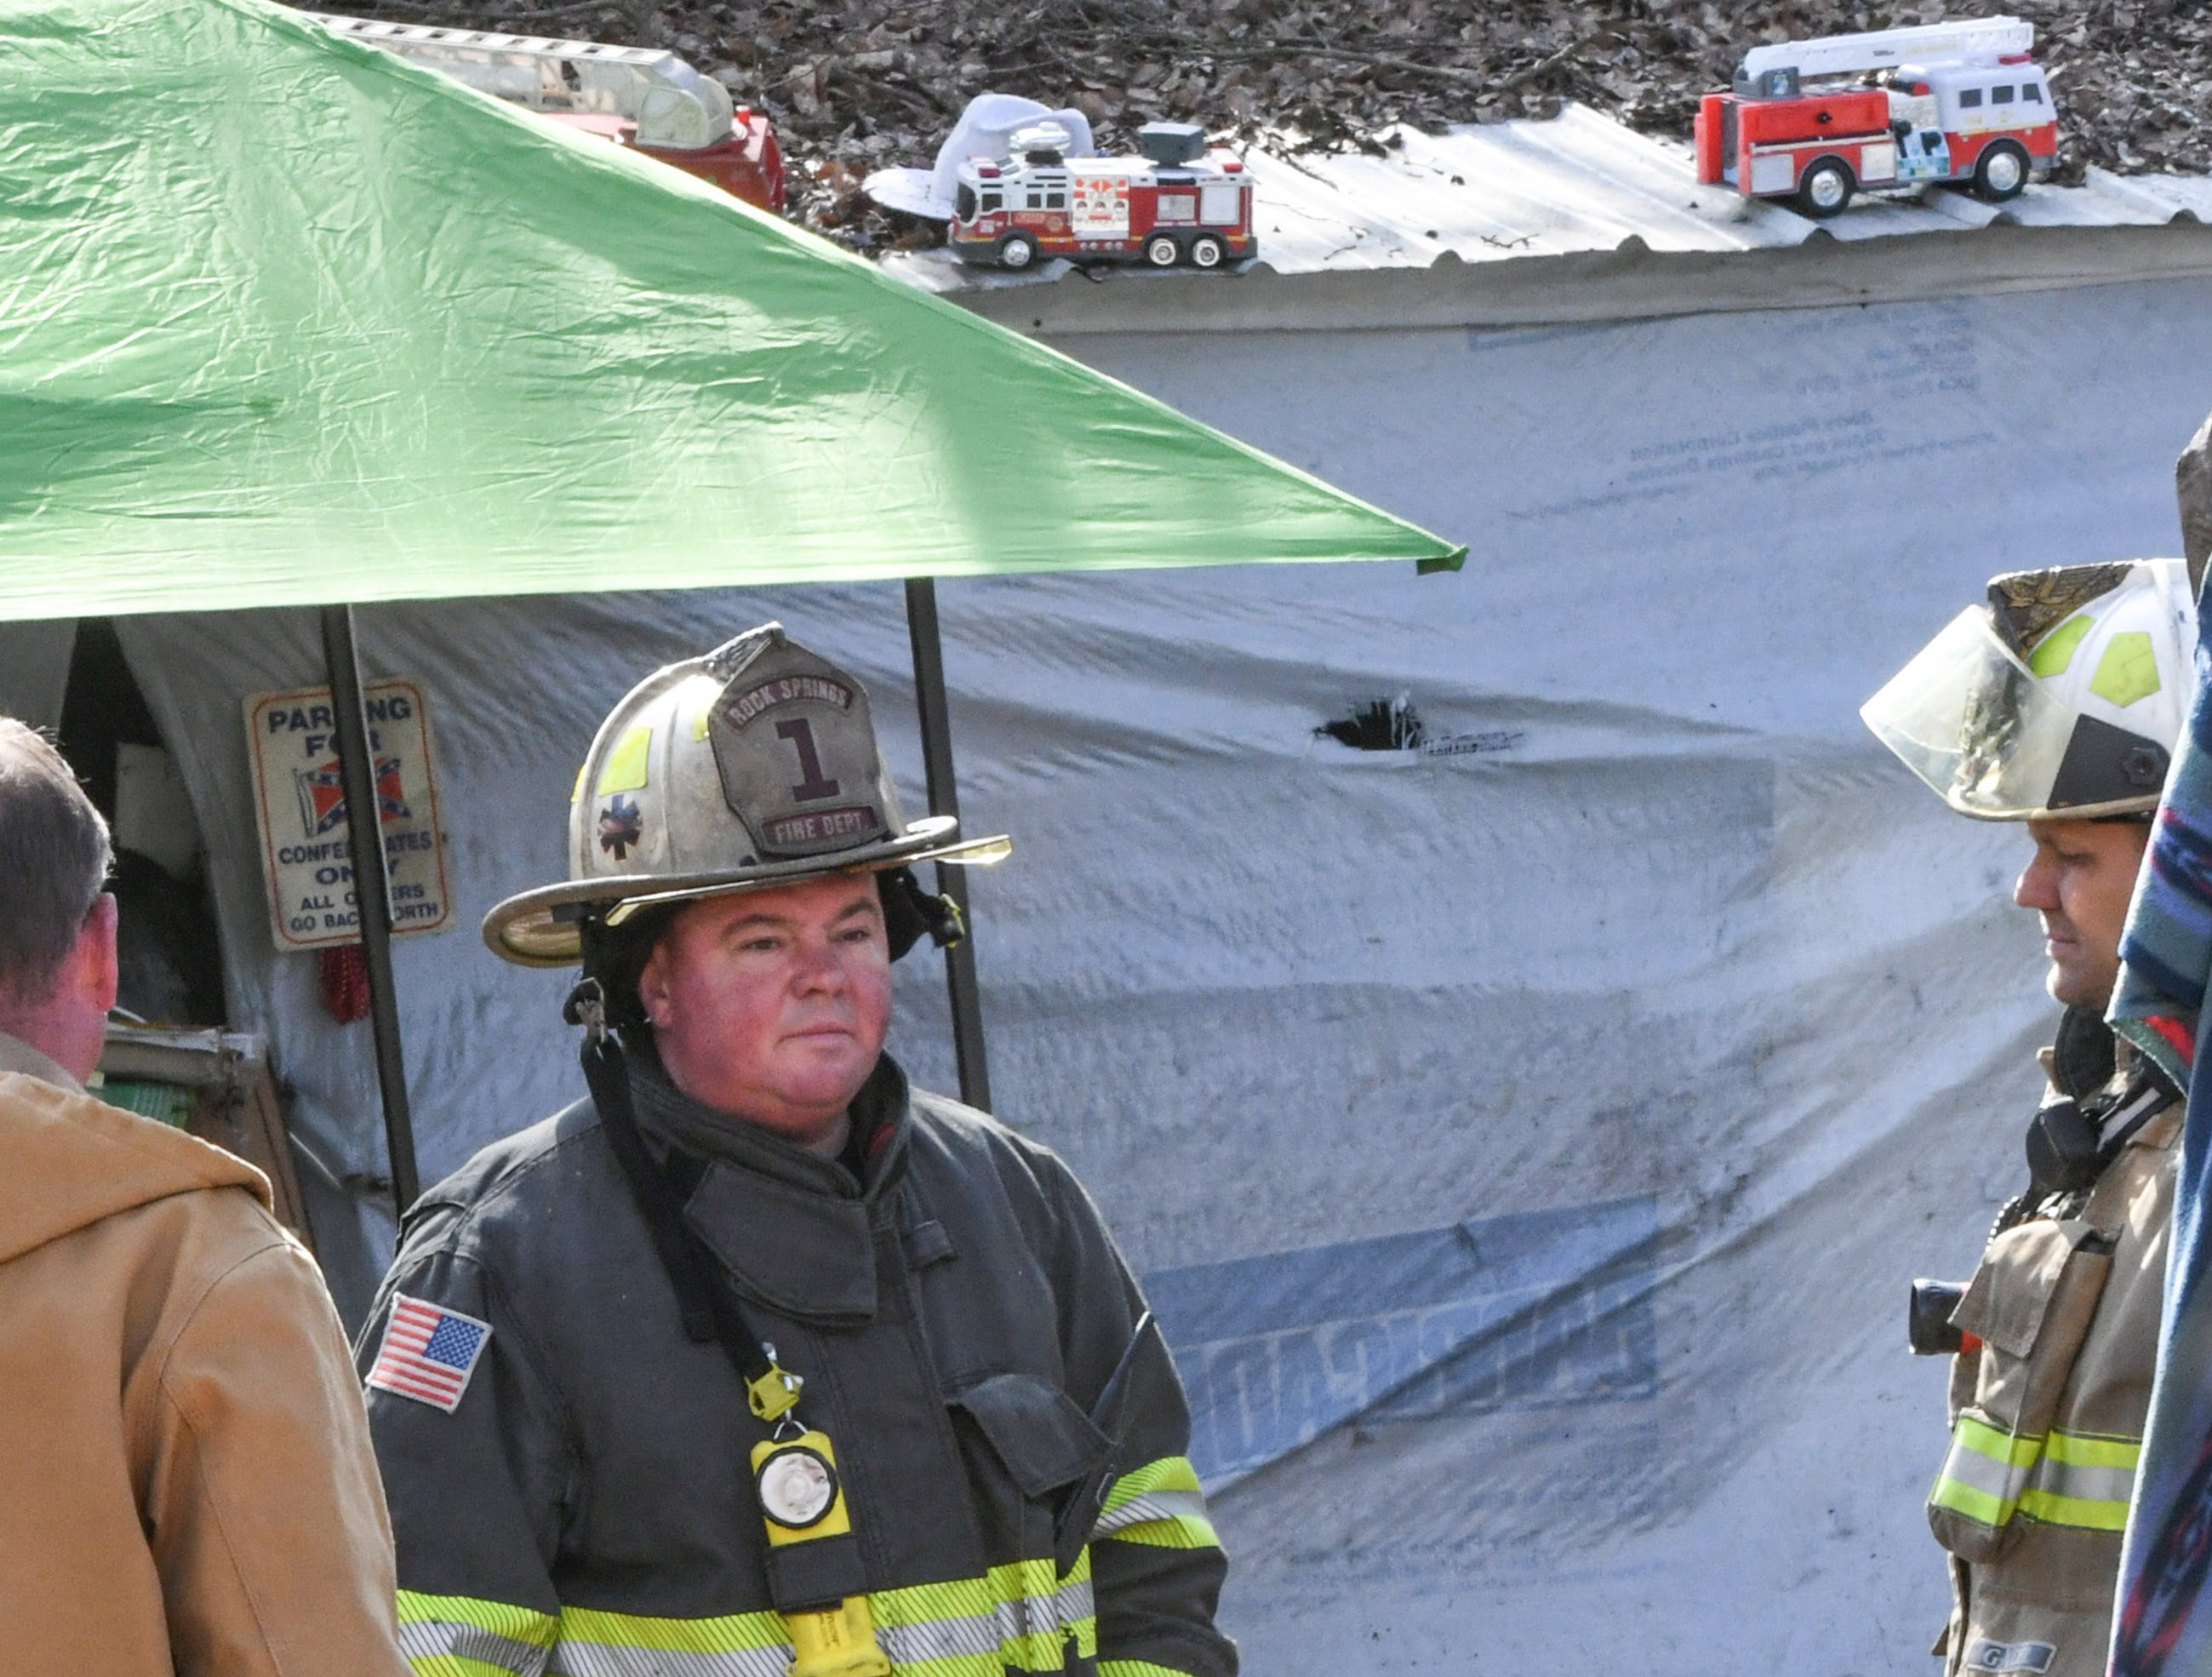 Chief Greg Elgin stands near the home at the 800 block of Brazeale Street in Belton Tuesday, March 26, 2019. The man, woman, and dog at the home were unharmed at the fire which Cheddar fire responded to, with assist from Belton, Rock Springs and Belton EMS. Anderson County fire investigator Wendall Marshall was at the scene of the fire under investigation.